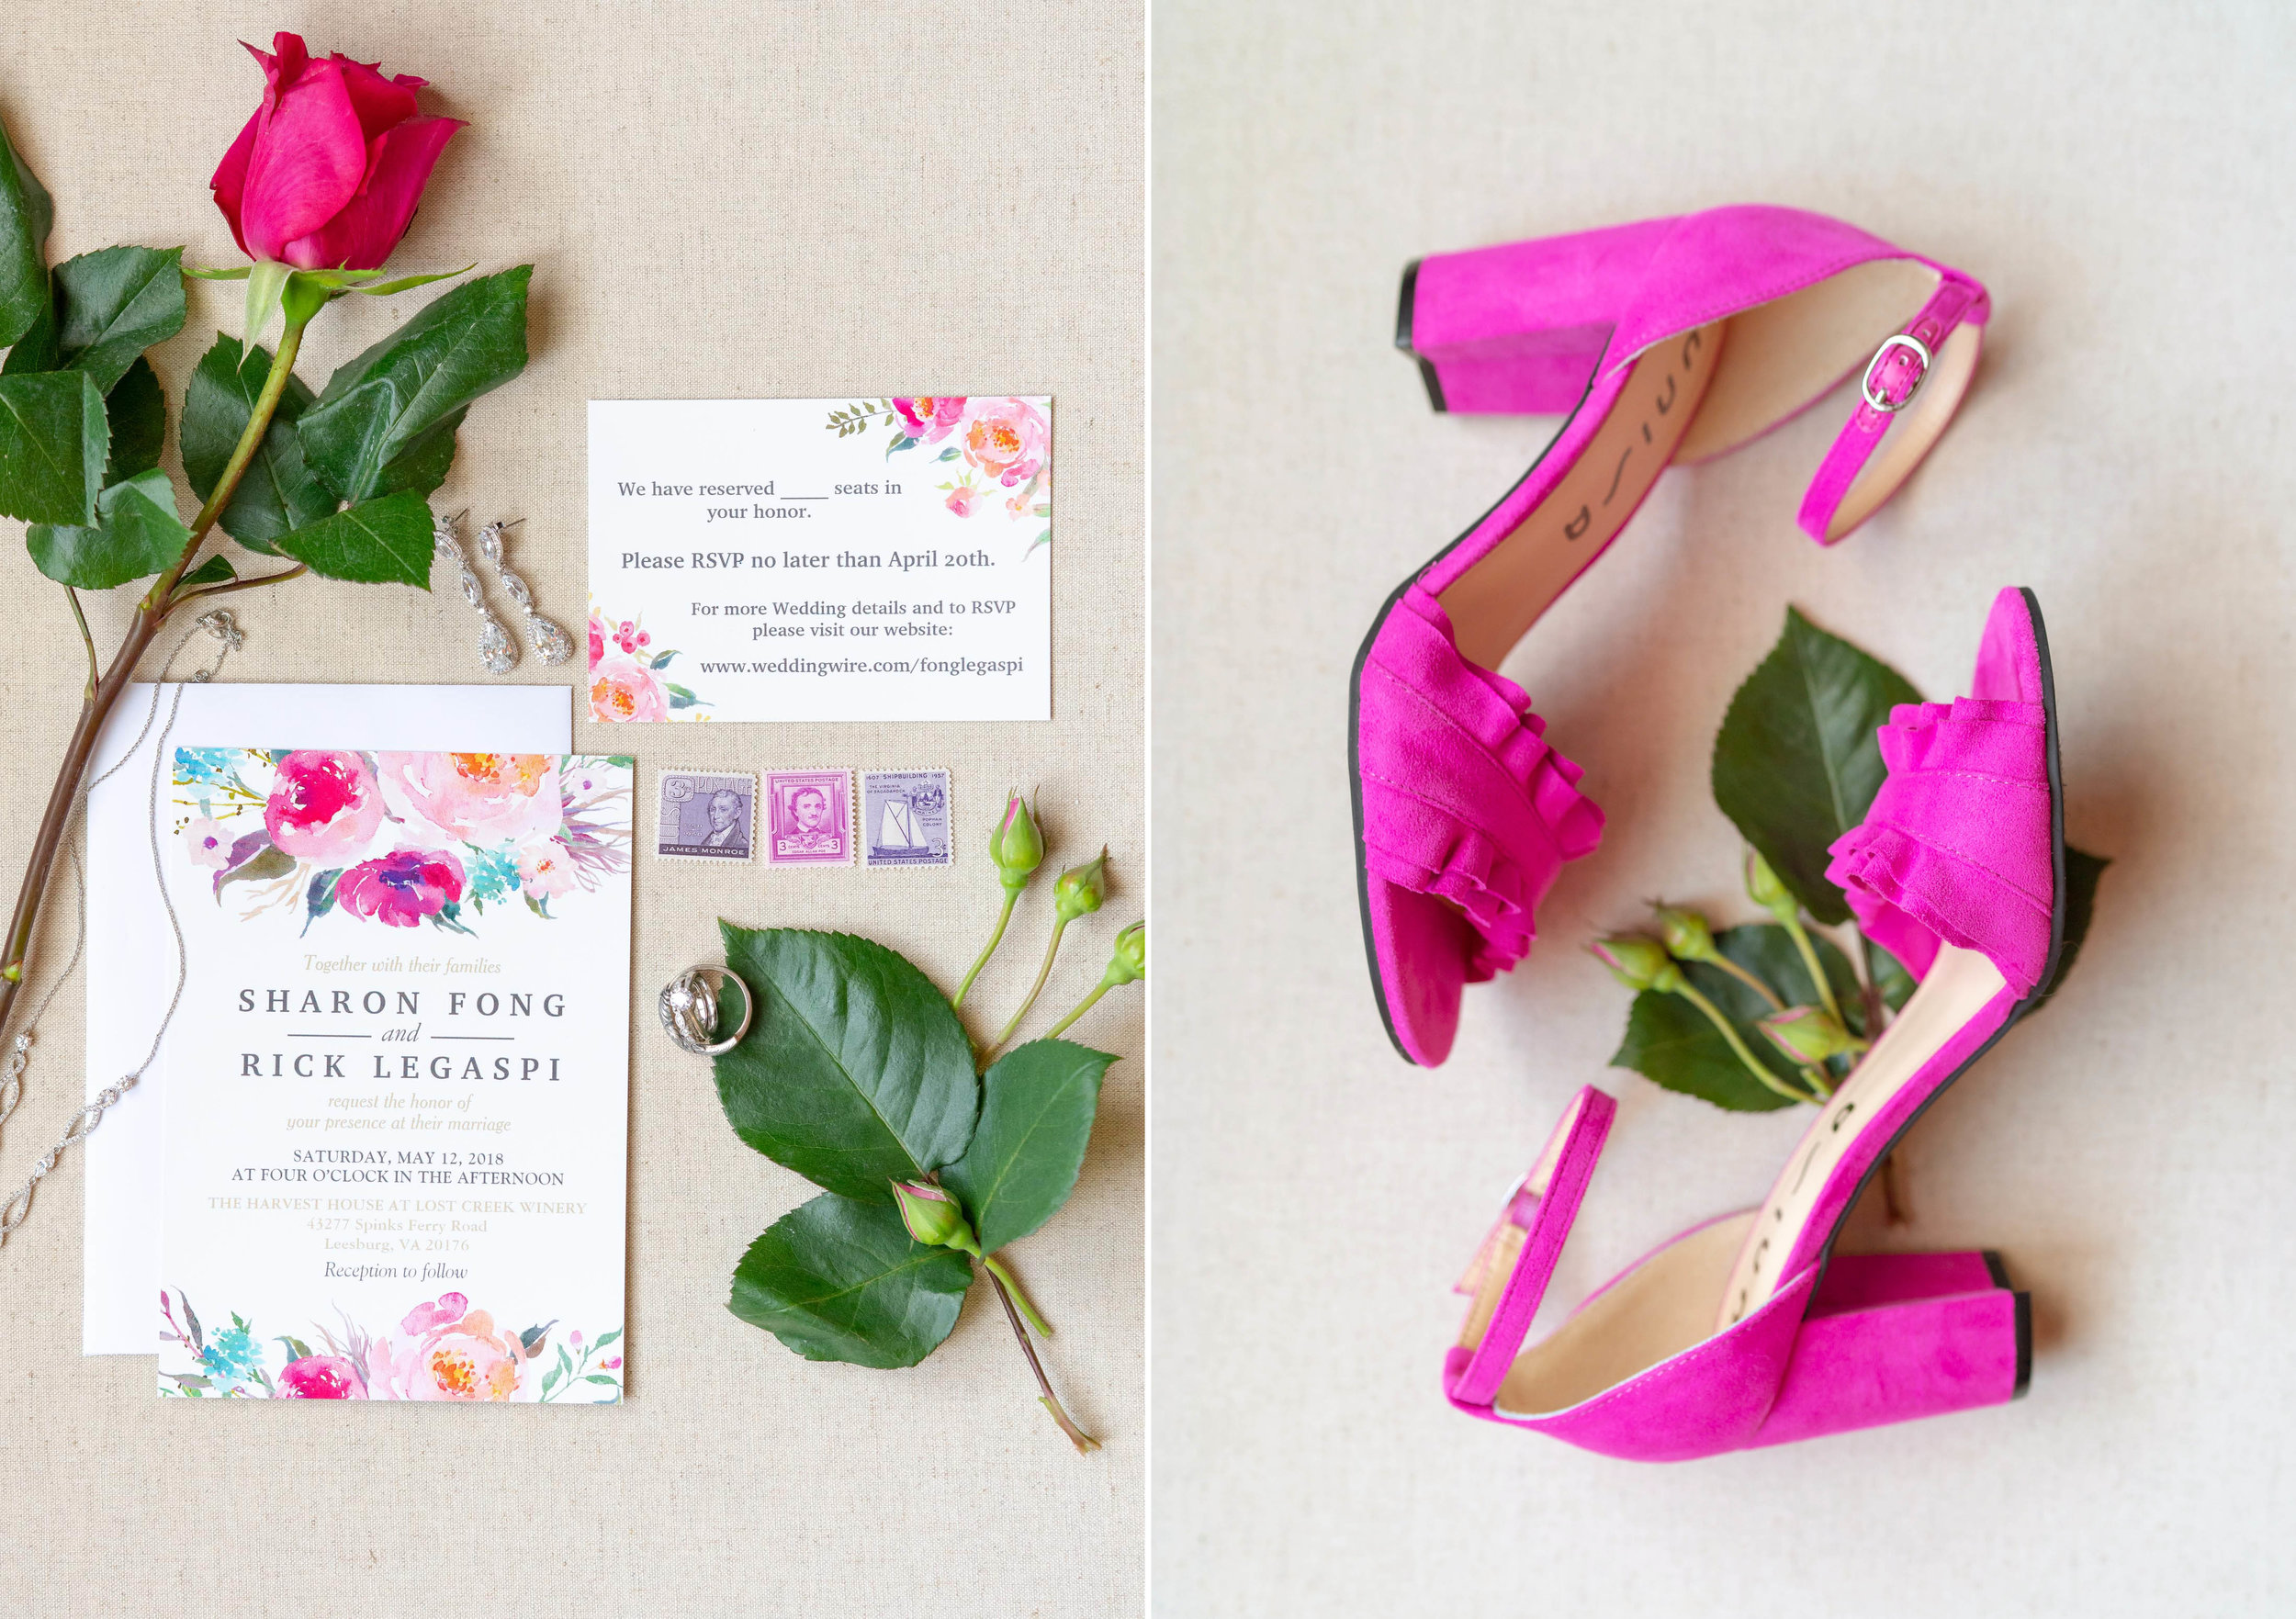 Wedding invitations at Harvest House at Lost Creek Winery